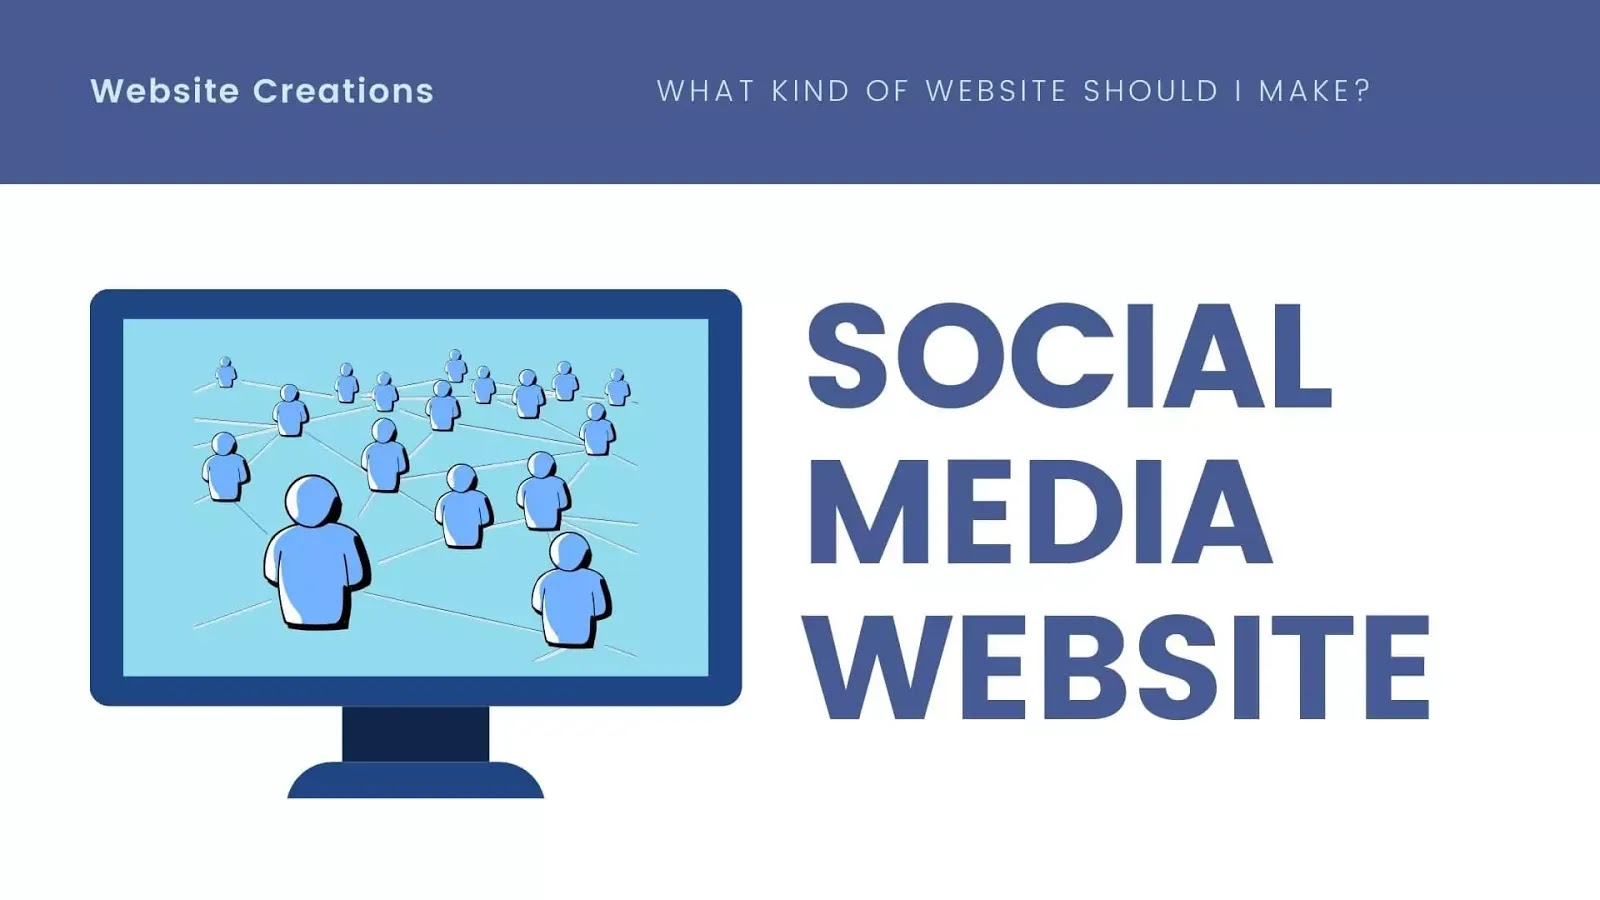 Creating a Social Media website and kind of website to create